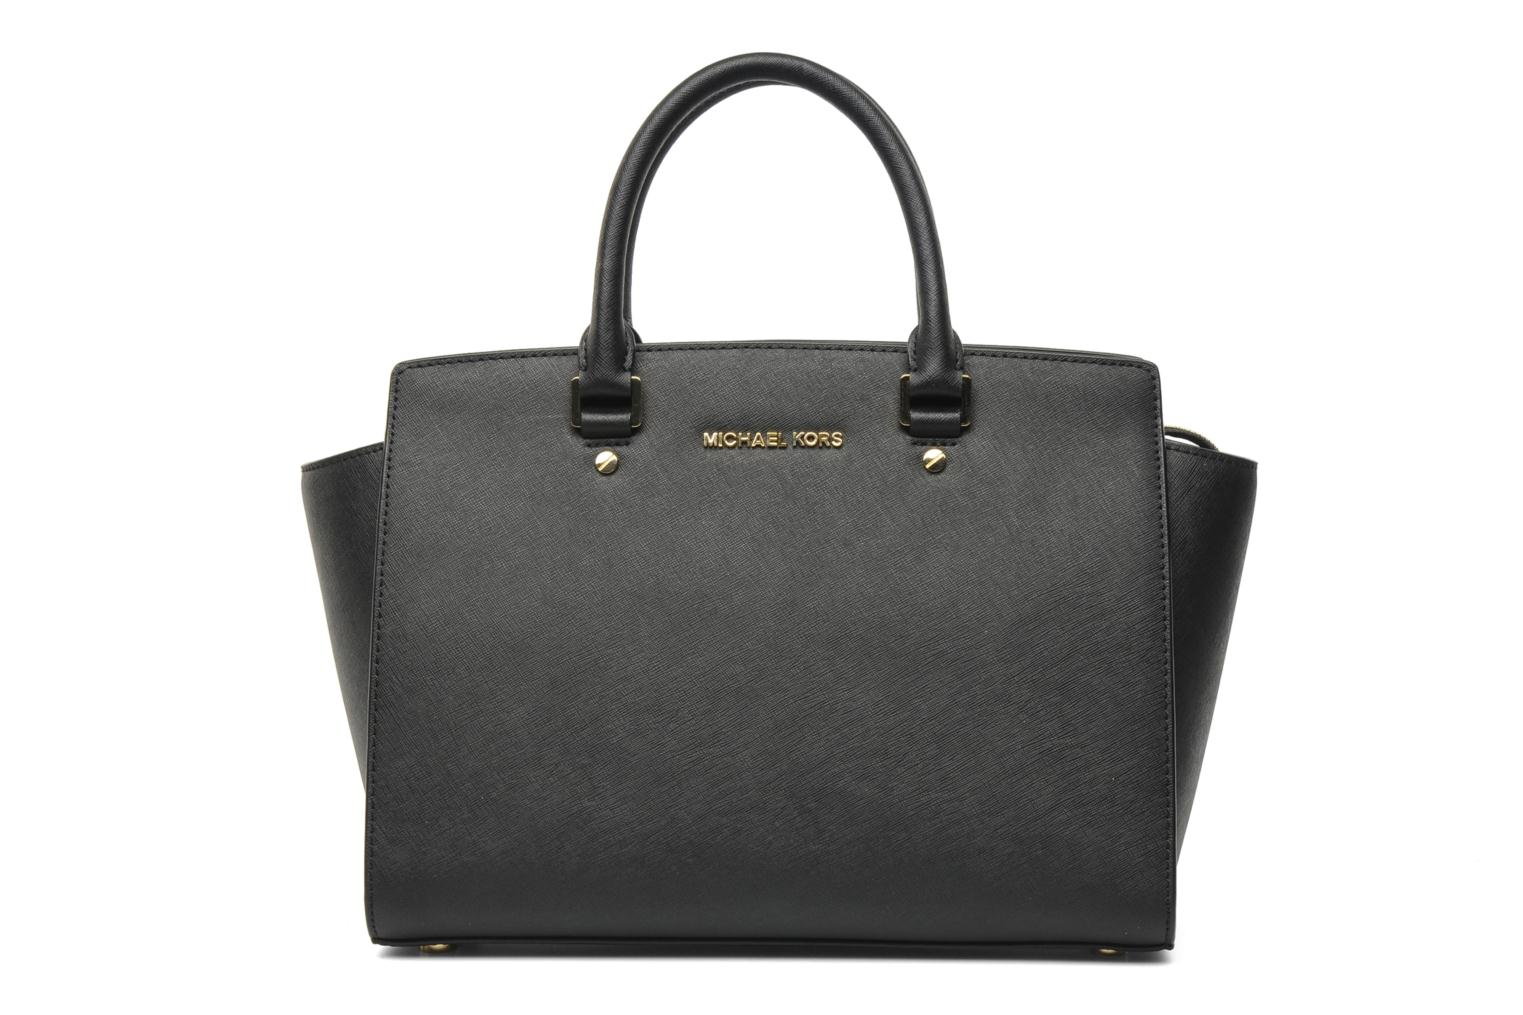 SELMA LG TZ Satchel by Michael Michael Kors (Black) | Sarenza UK | Your Handbags SELMA LG TZ Satchel Michael Michael Kors delivered for Free